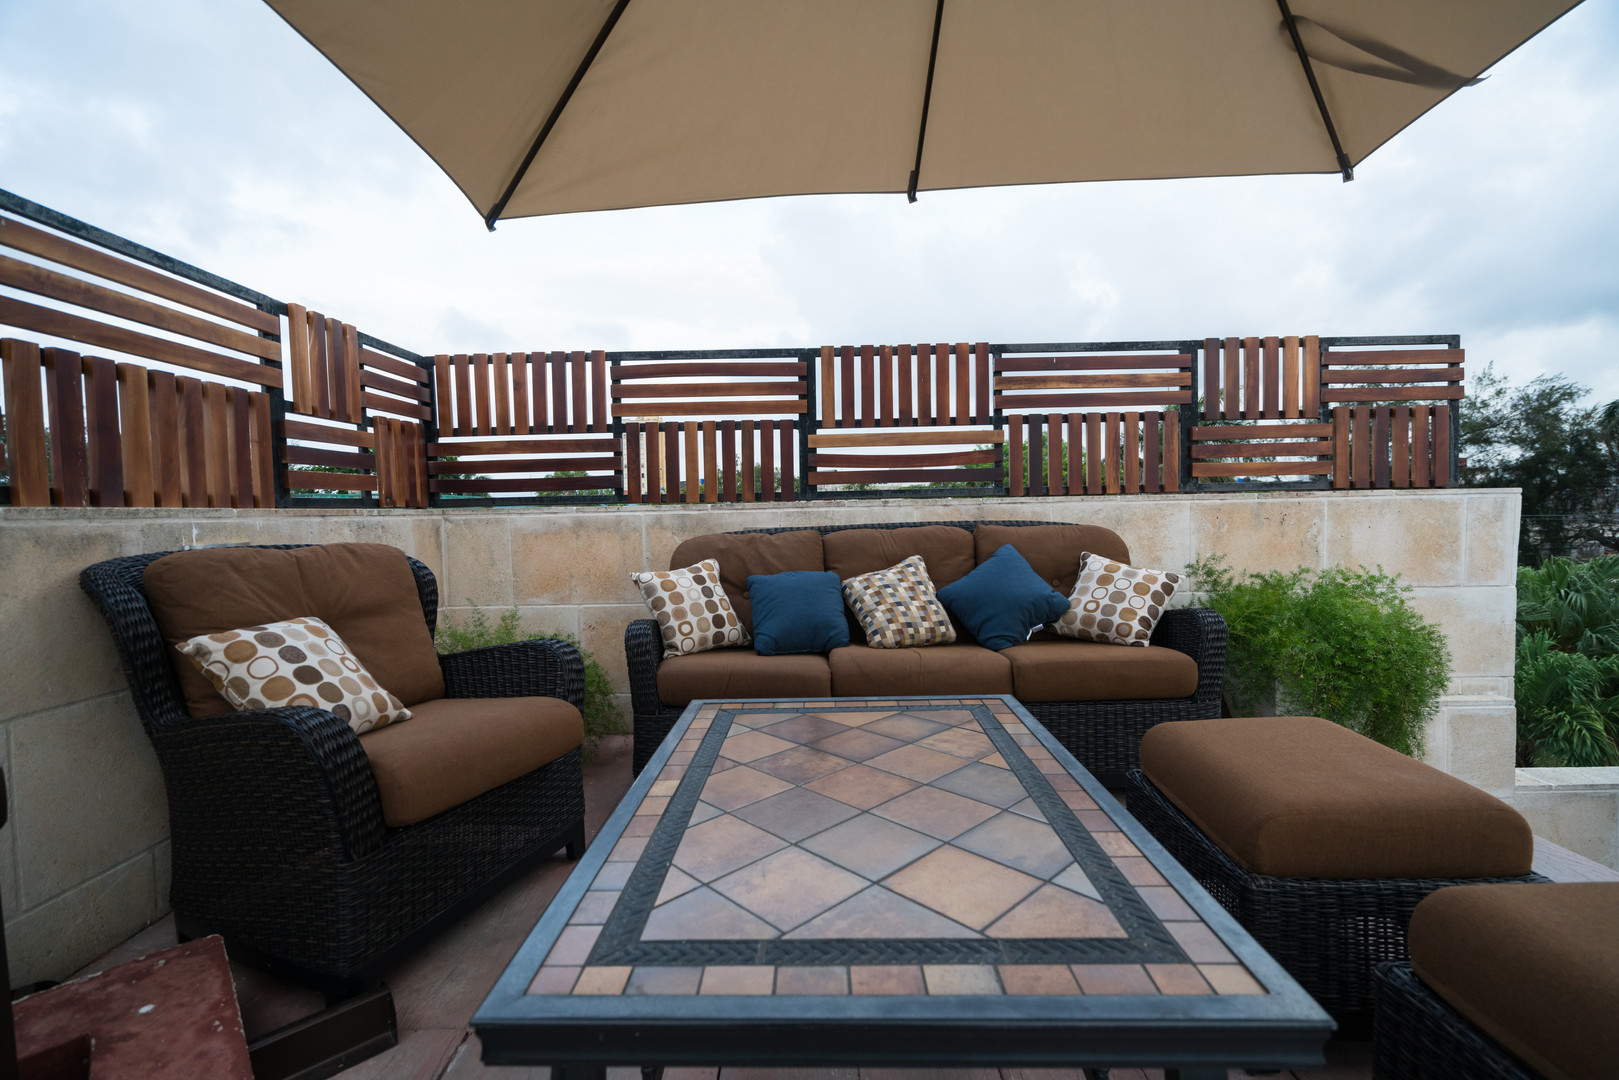 El Candil Boutique Hotel Rooftop Bar & Grill